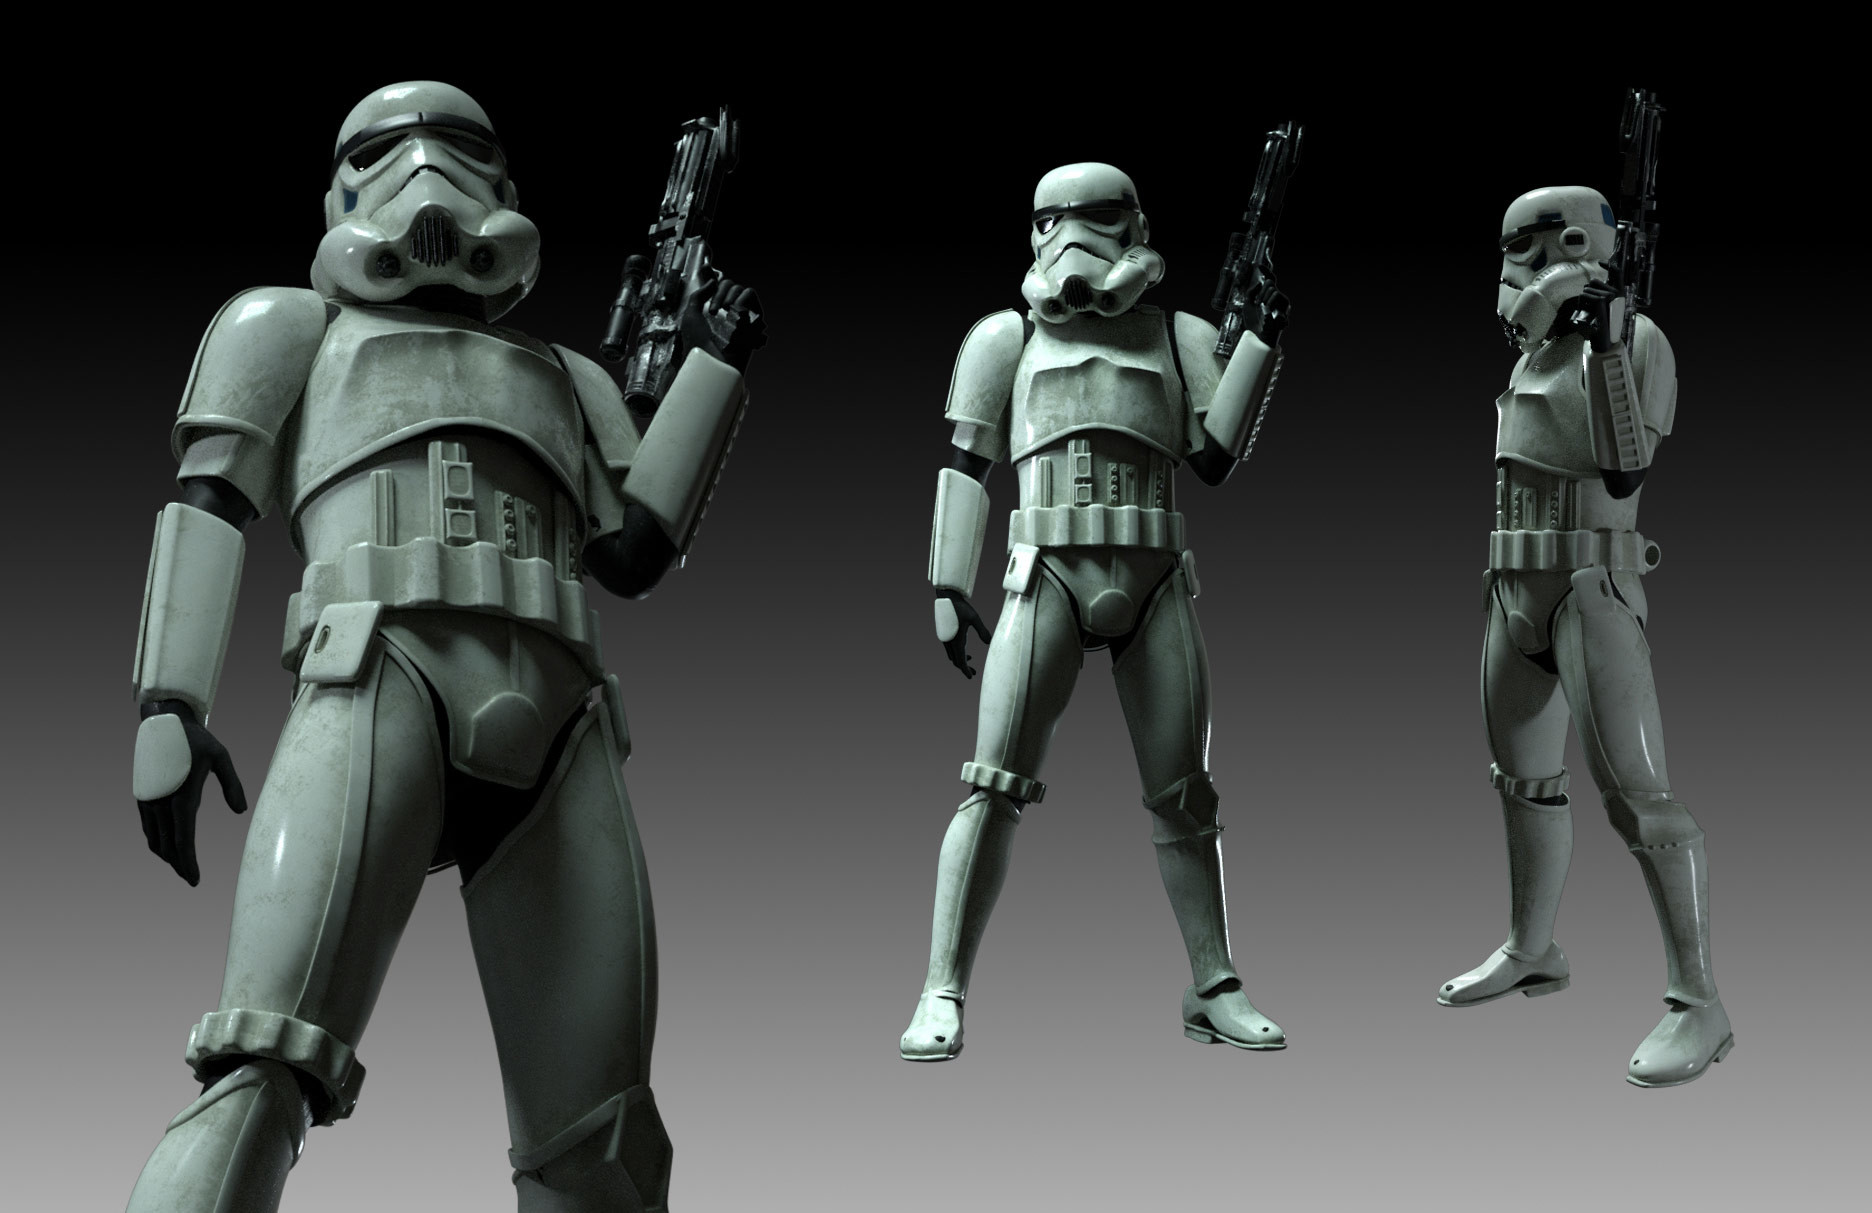 Storm trooper suit render